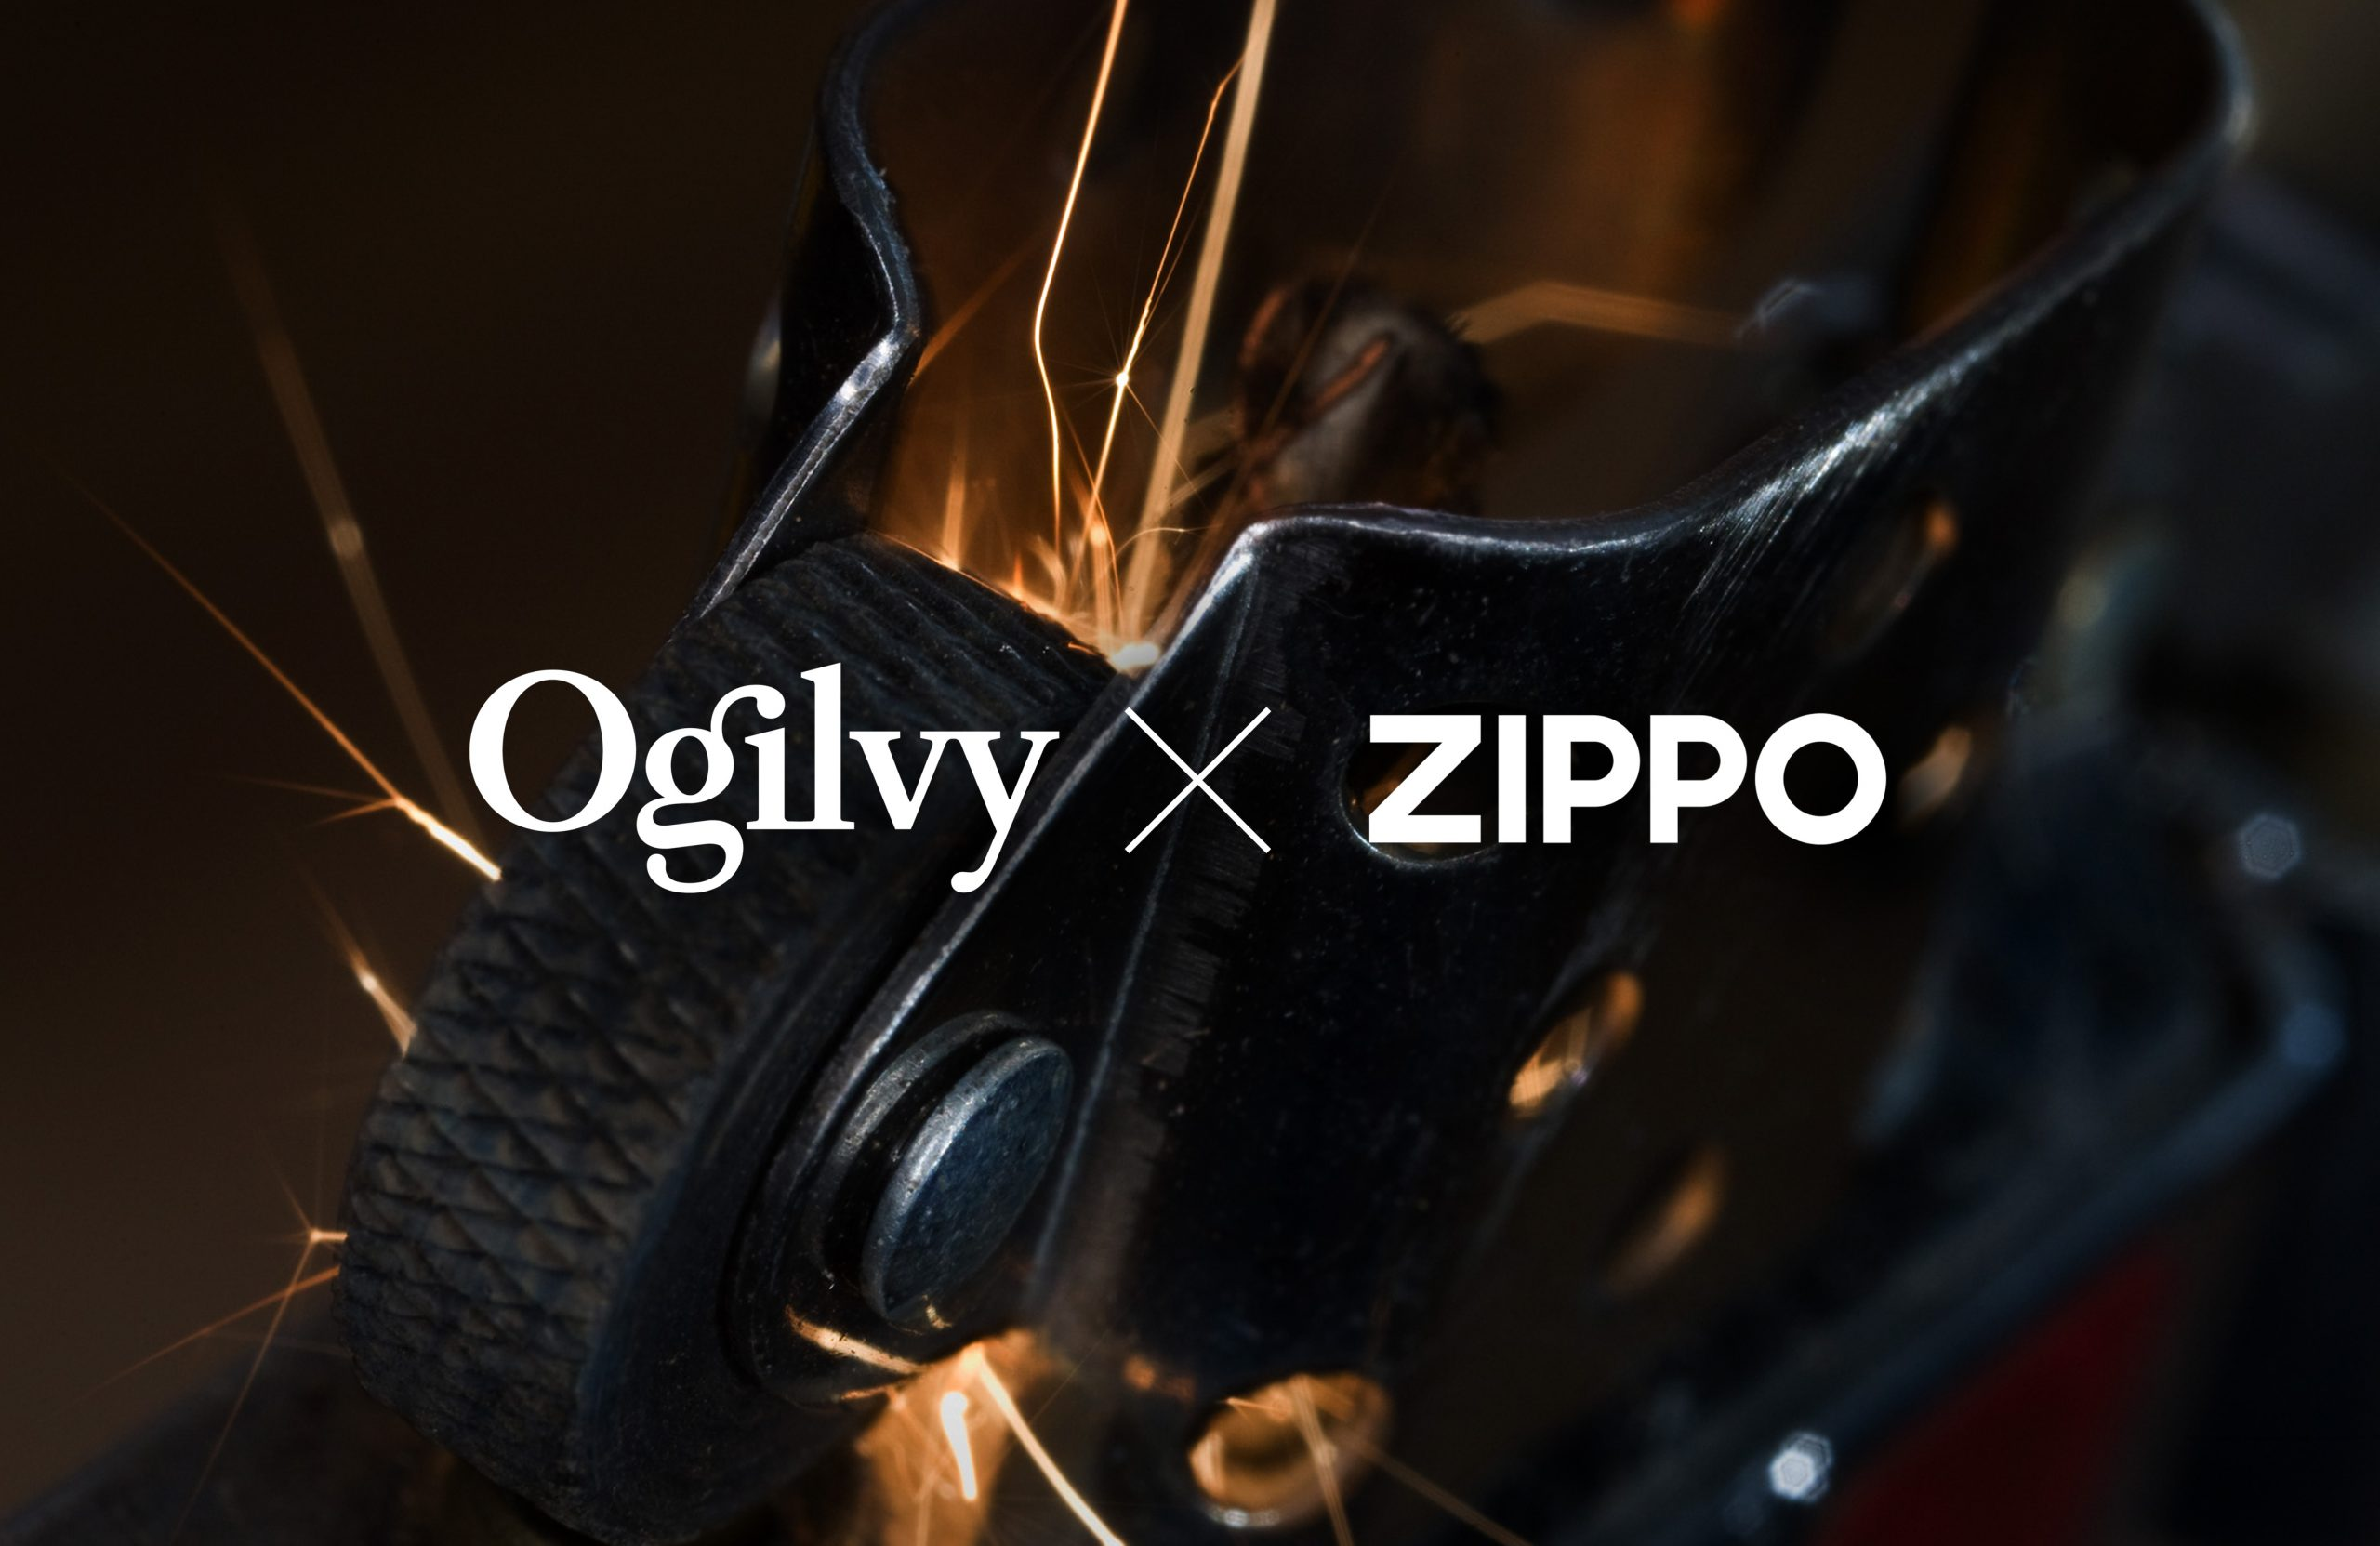 Zippo Appoints Ogilvy as Creative, PR, and Social Agency Partner | AdWeek